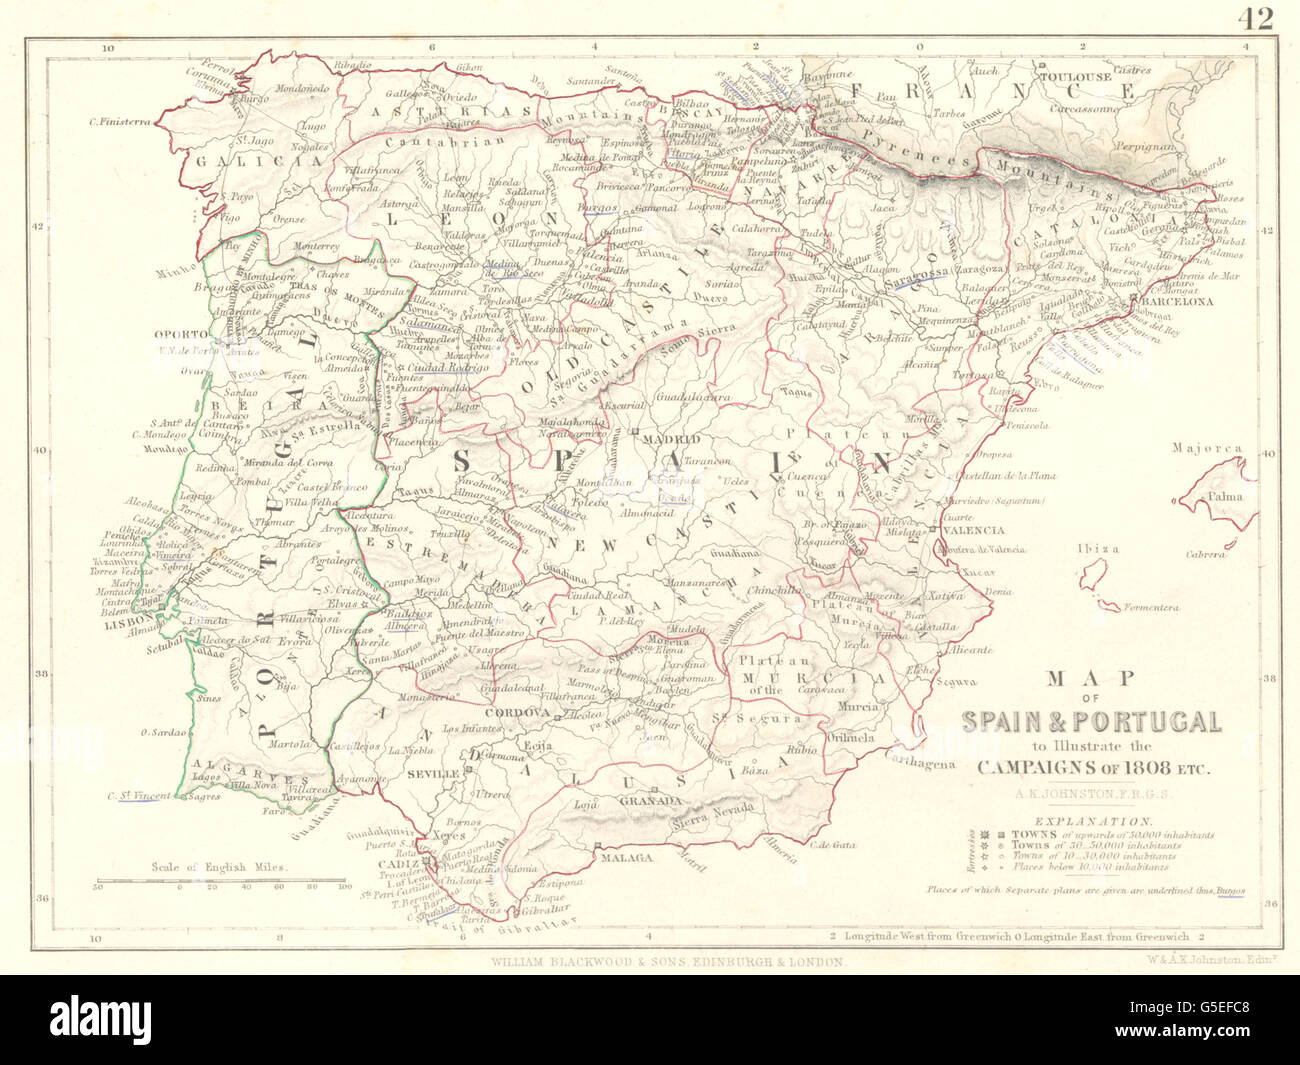 SPAIN & PORTUGAL: Illustrate the campaigns 1808. Napoleonic Wars, 1848 map - Stock Image